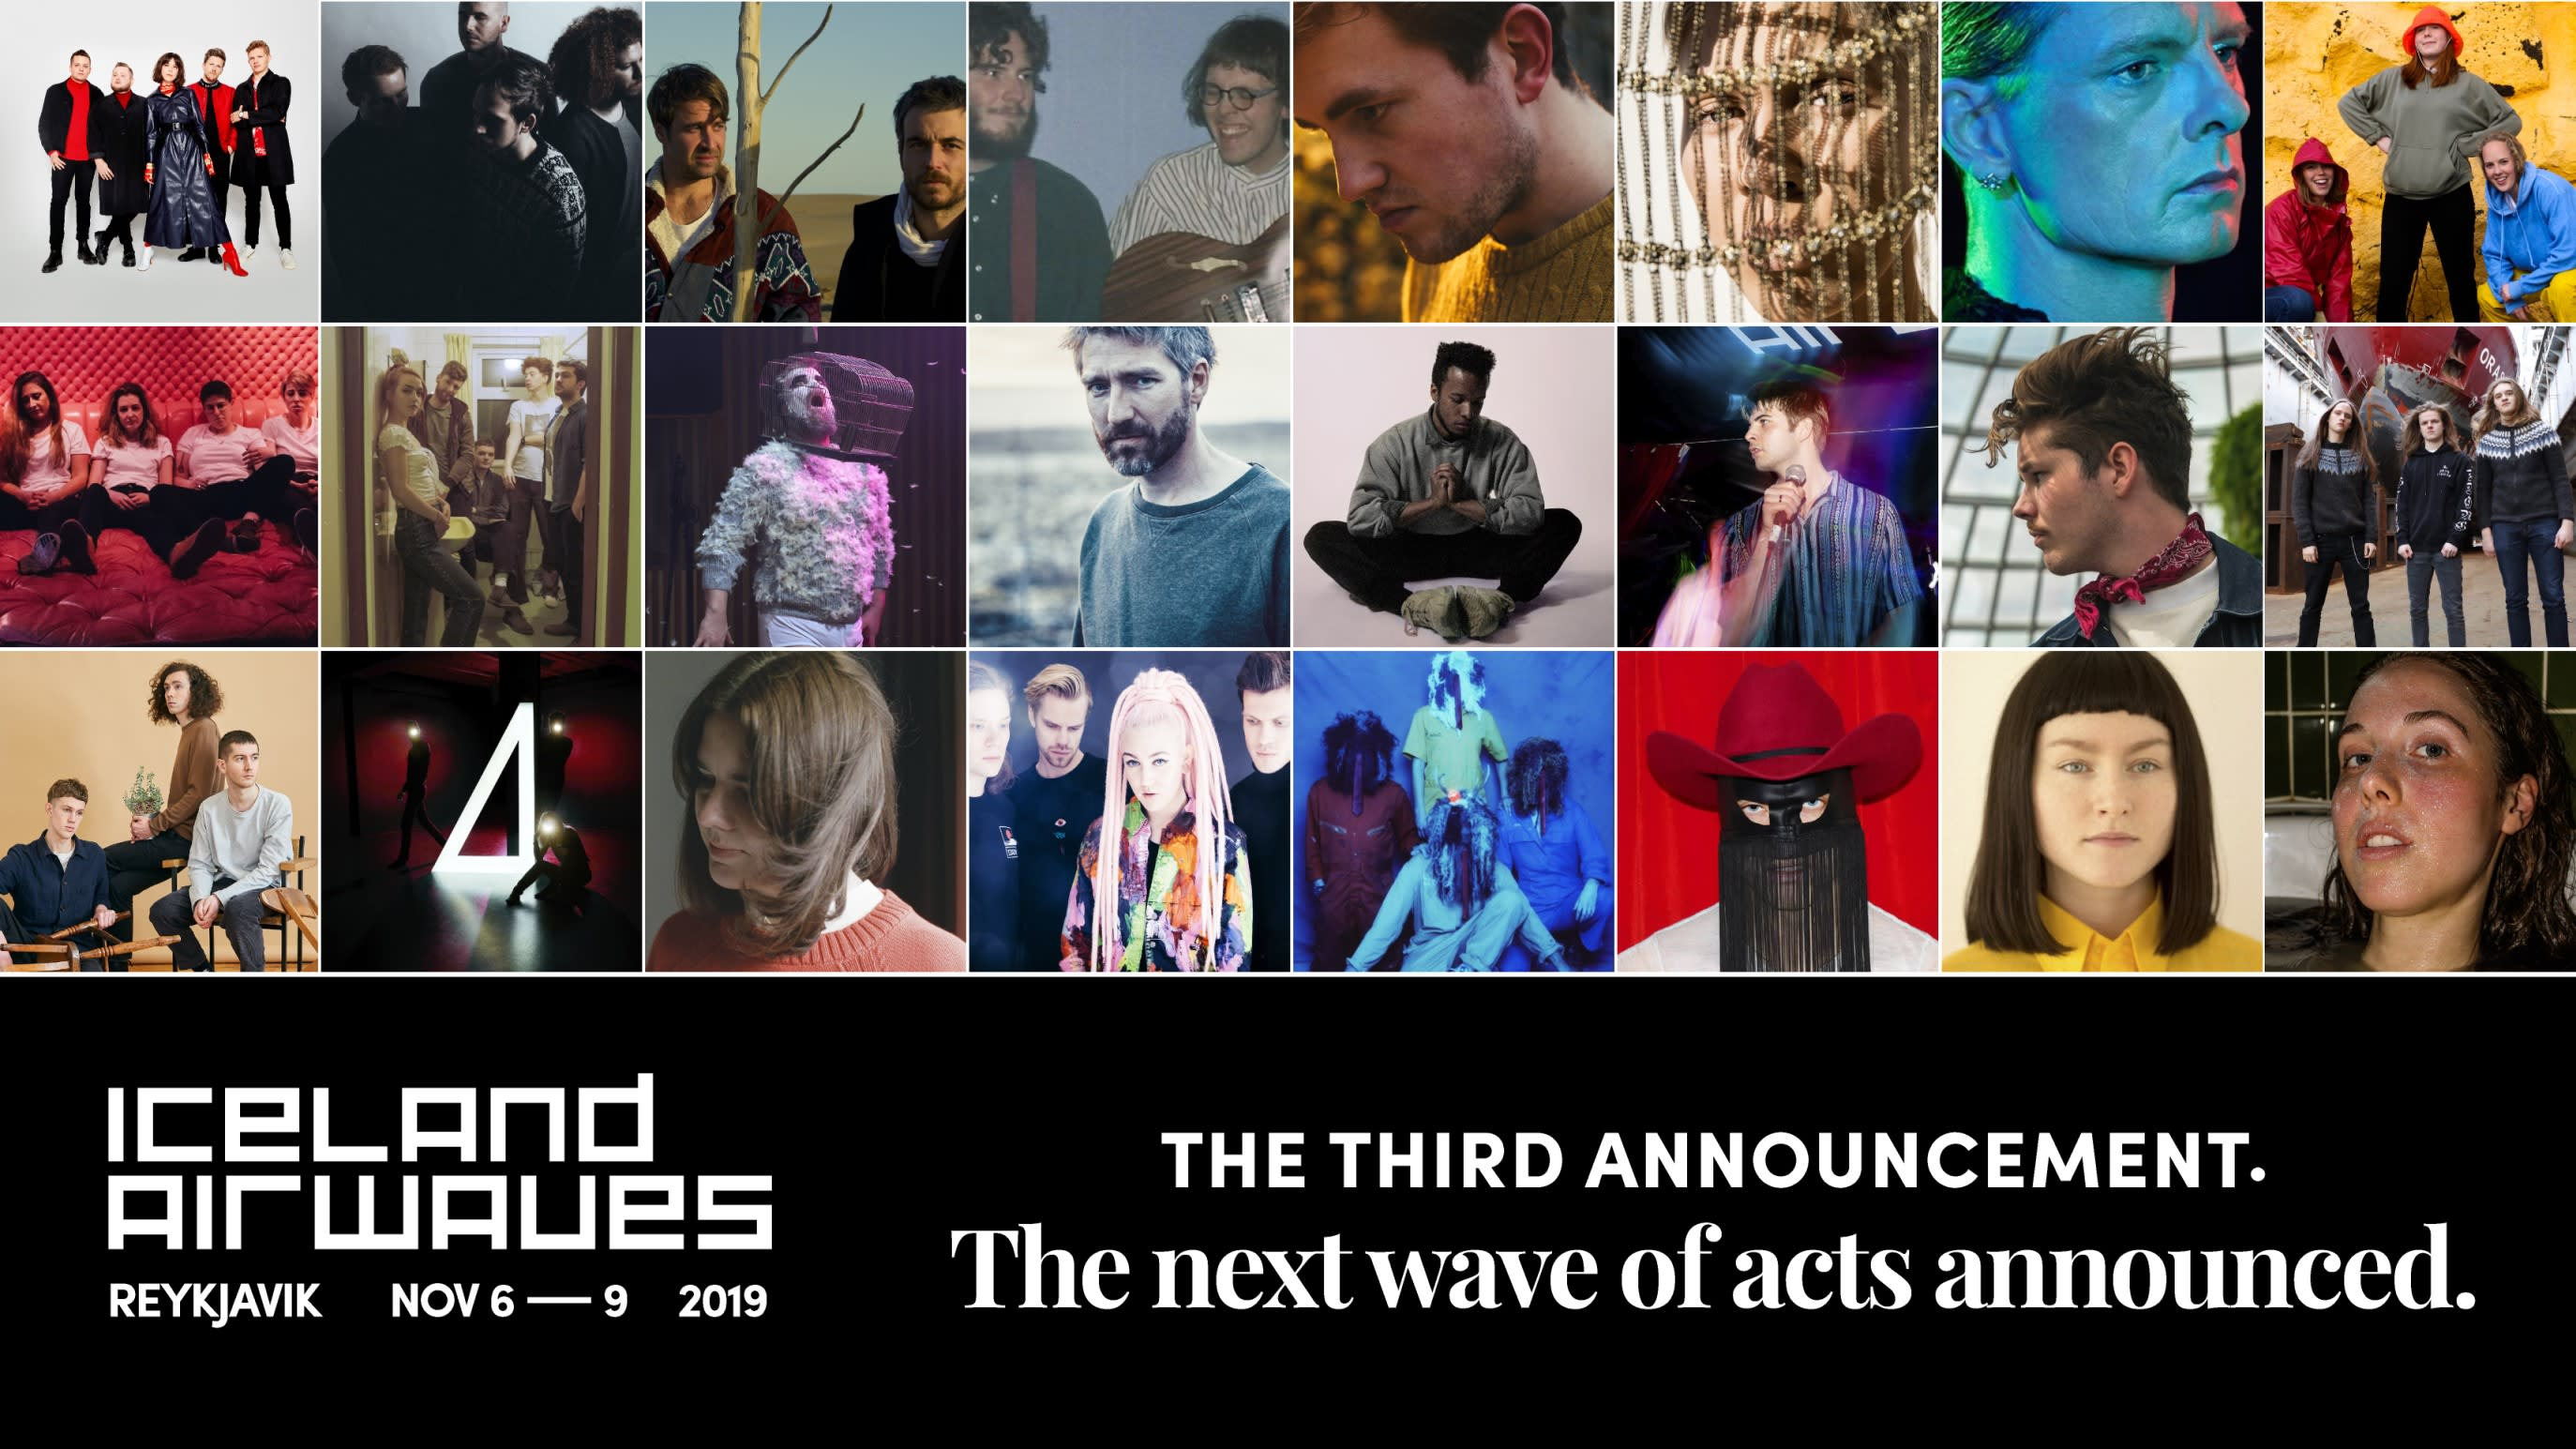 The poster for the third Iceland Airwaves 2019 lineup announcement